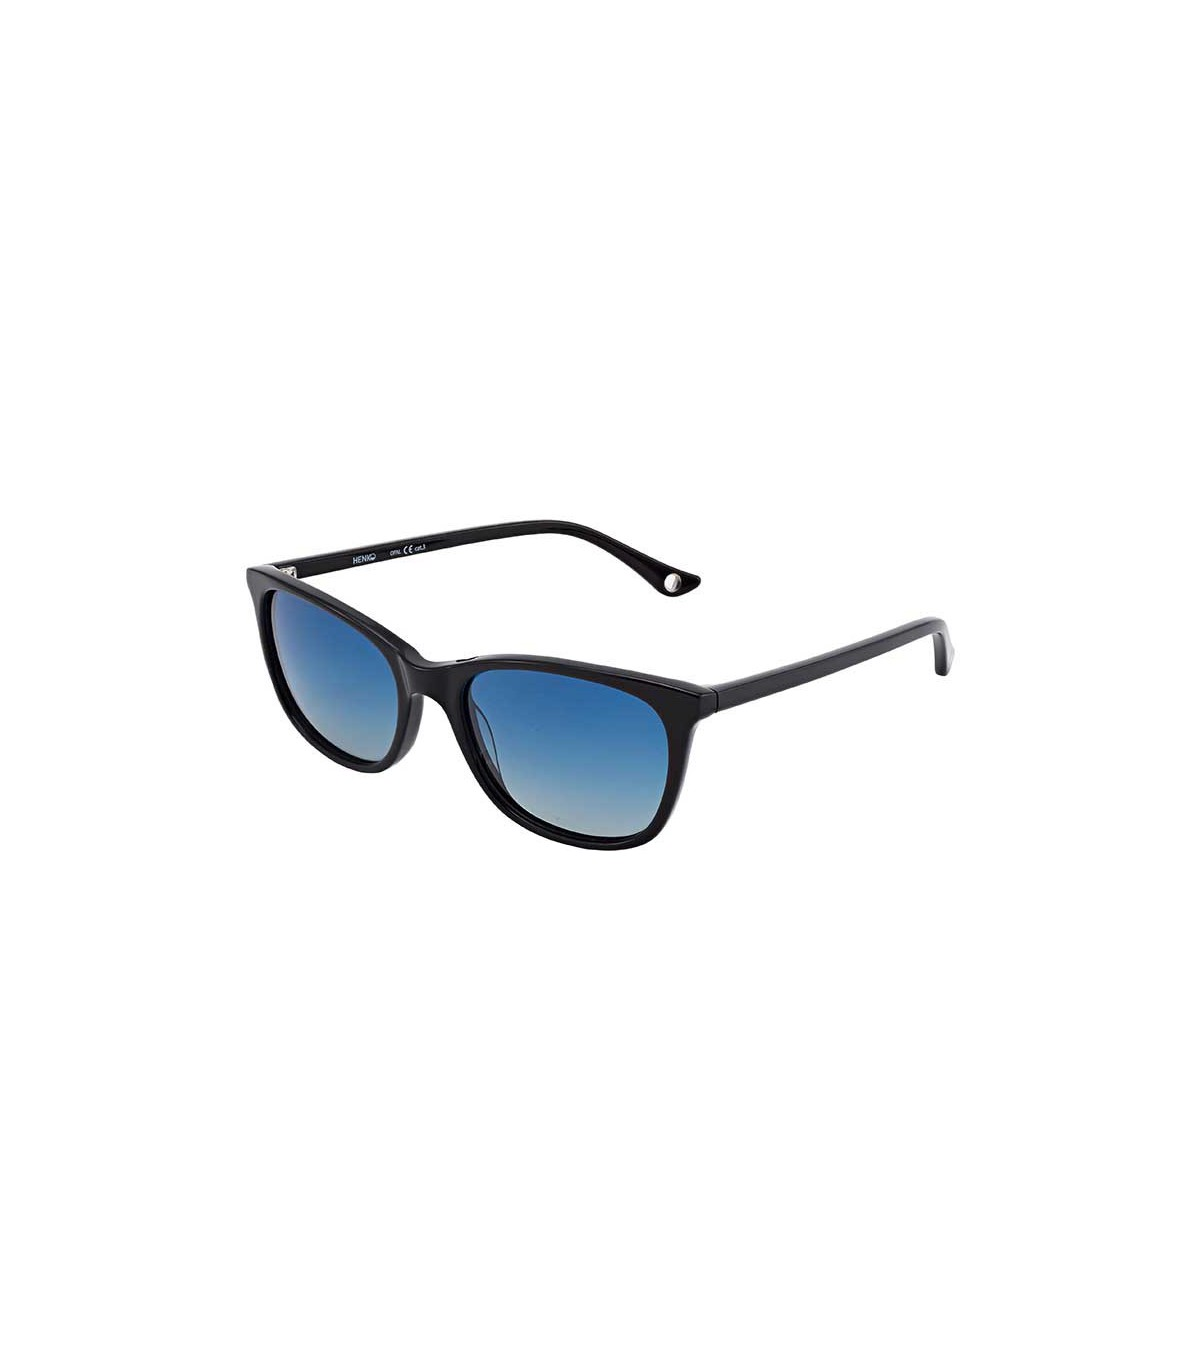 Henko Sunglasses (prescription optional) POAS132